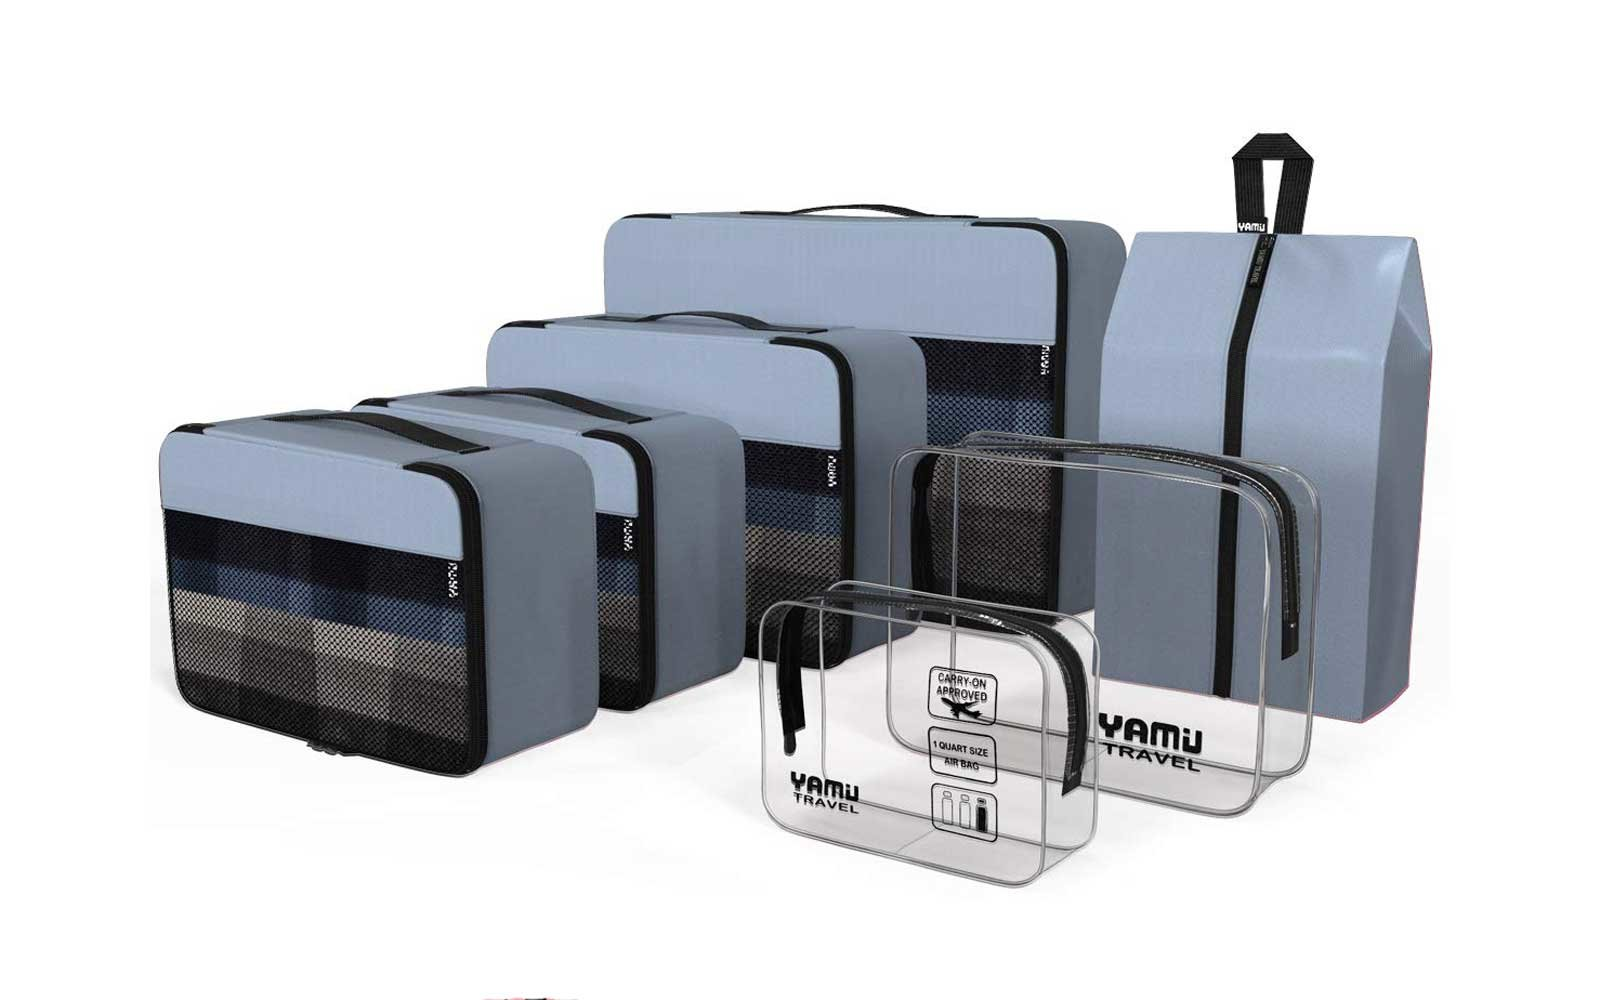 Best for Accessories: Yamiu Packing Cubes